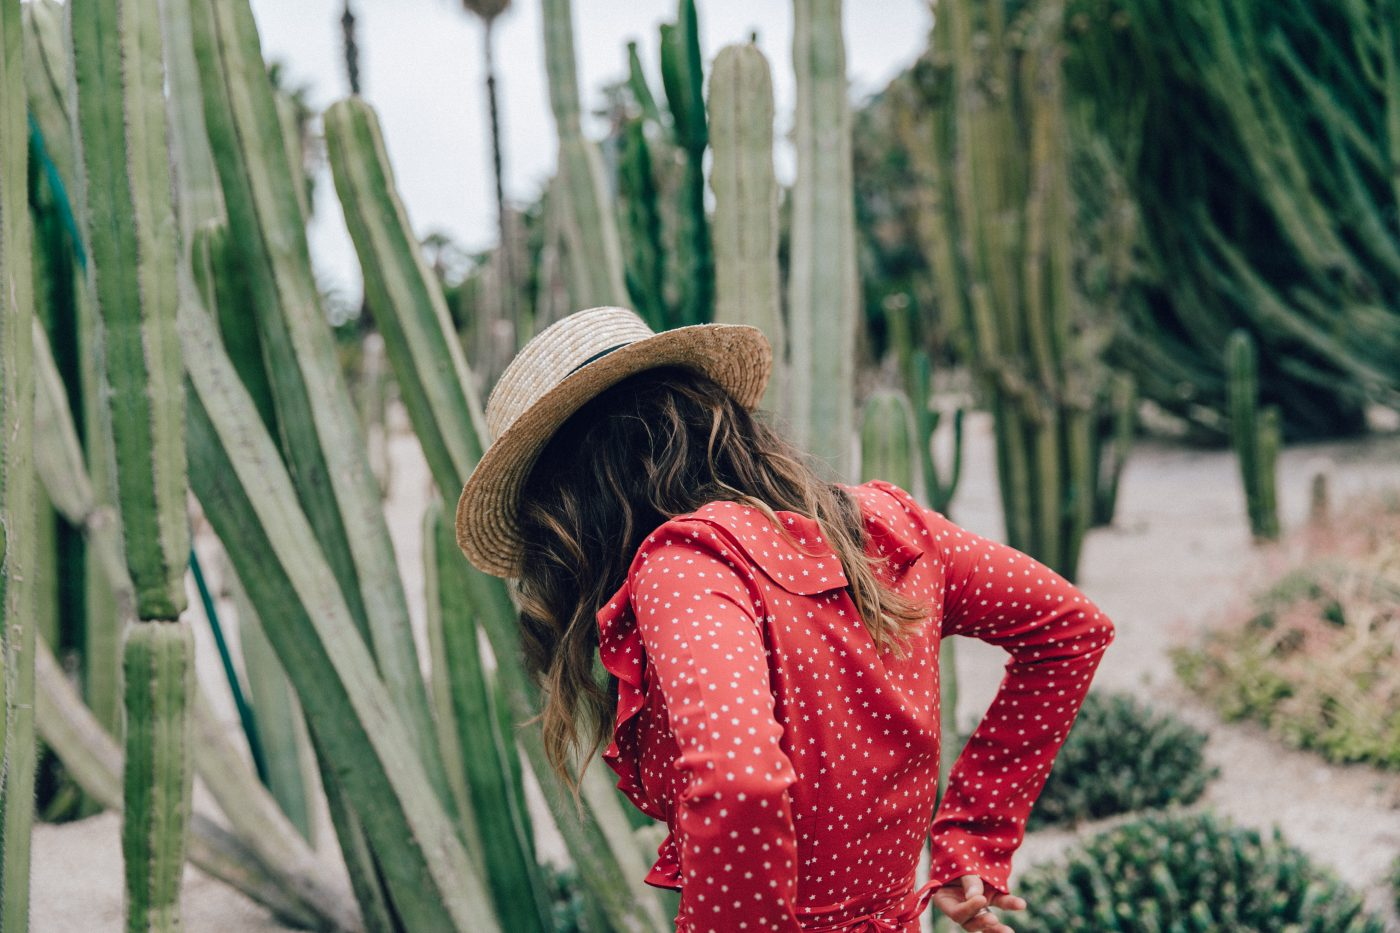 Realisation_Par_Dress-Star_Print-Red_Dress-Outfit-Catonier-Hat-Lack_Of_Color-Black_Sandals_Topshop-Barcelona-Collage_Vintage-Mossen_Gardens-9